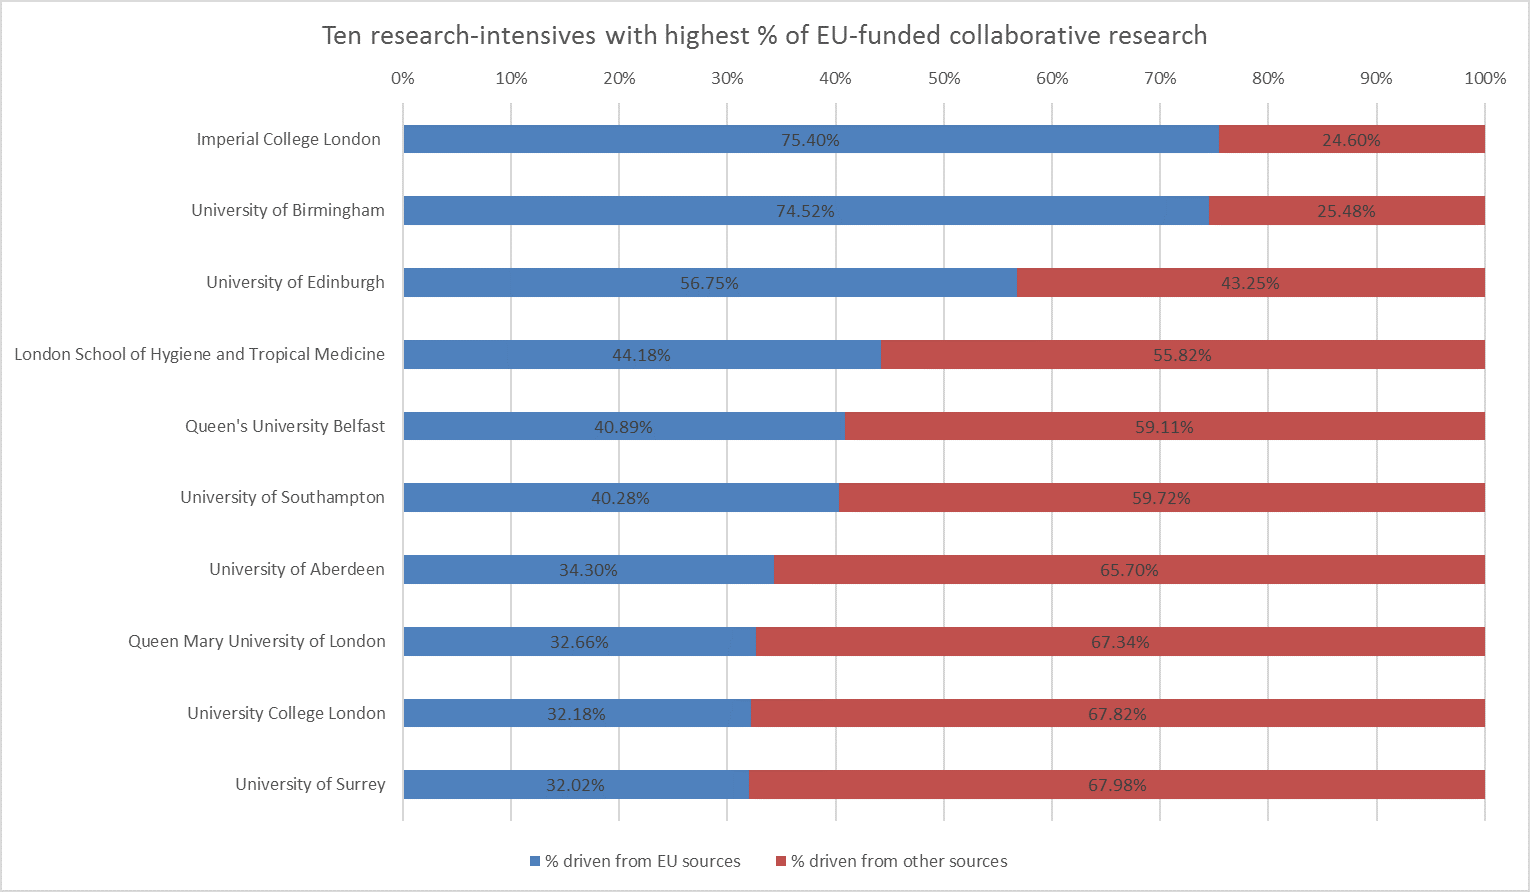 Ten research-intensives with highest % of EU-funded collaborative research